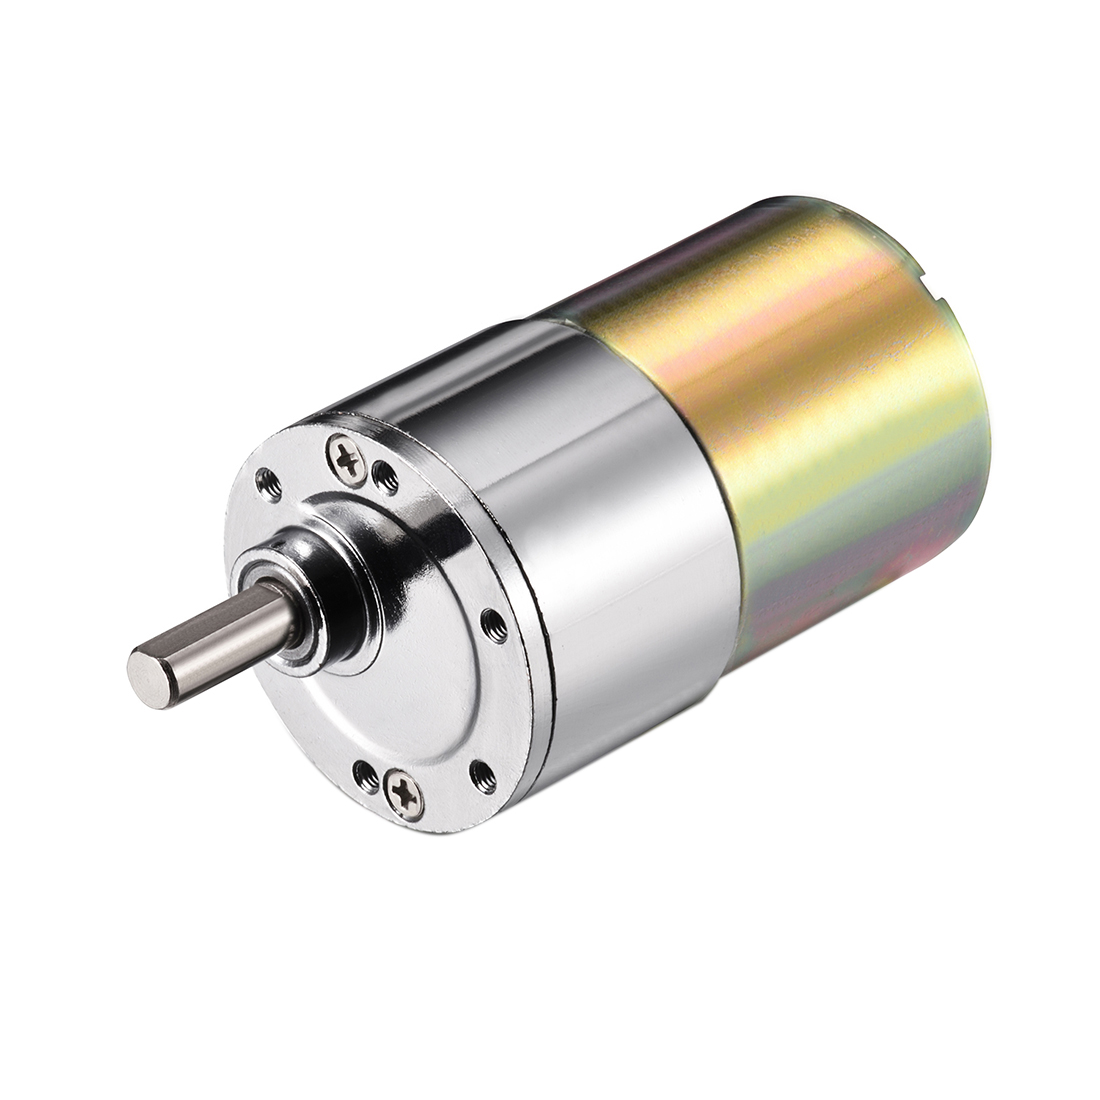 DC 24V 2RPM Micro Gear Box Motor Speed Reduction Electric Gearbox Eccentric Output Shaft